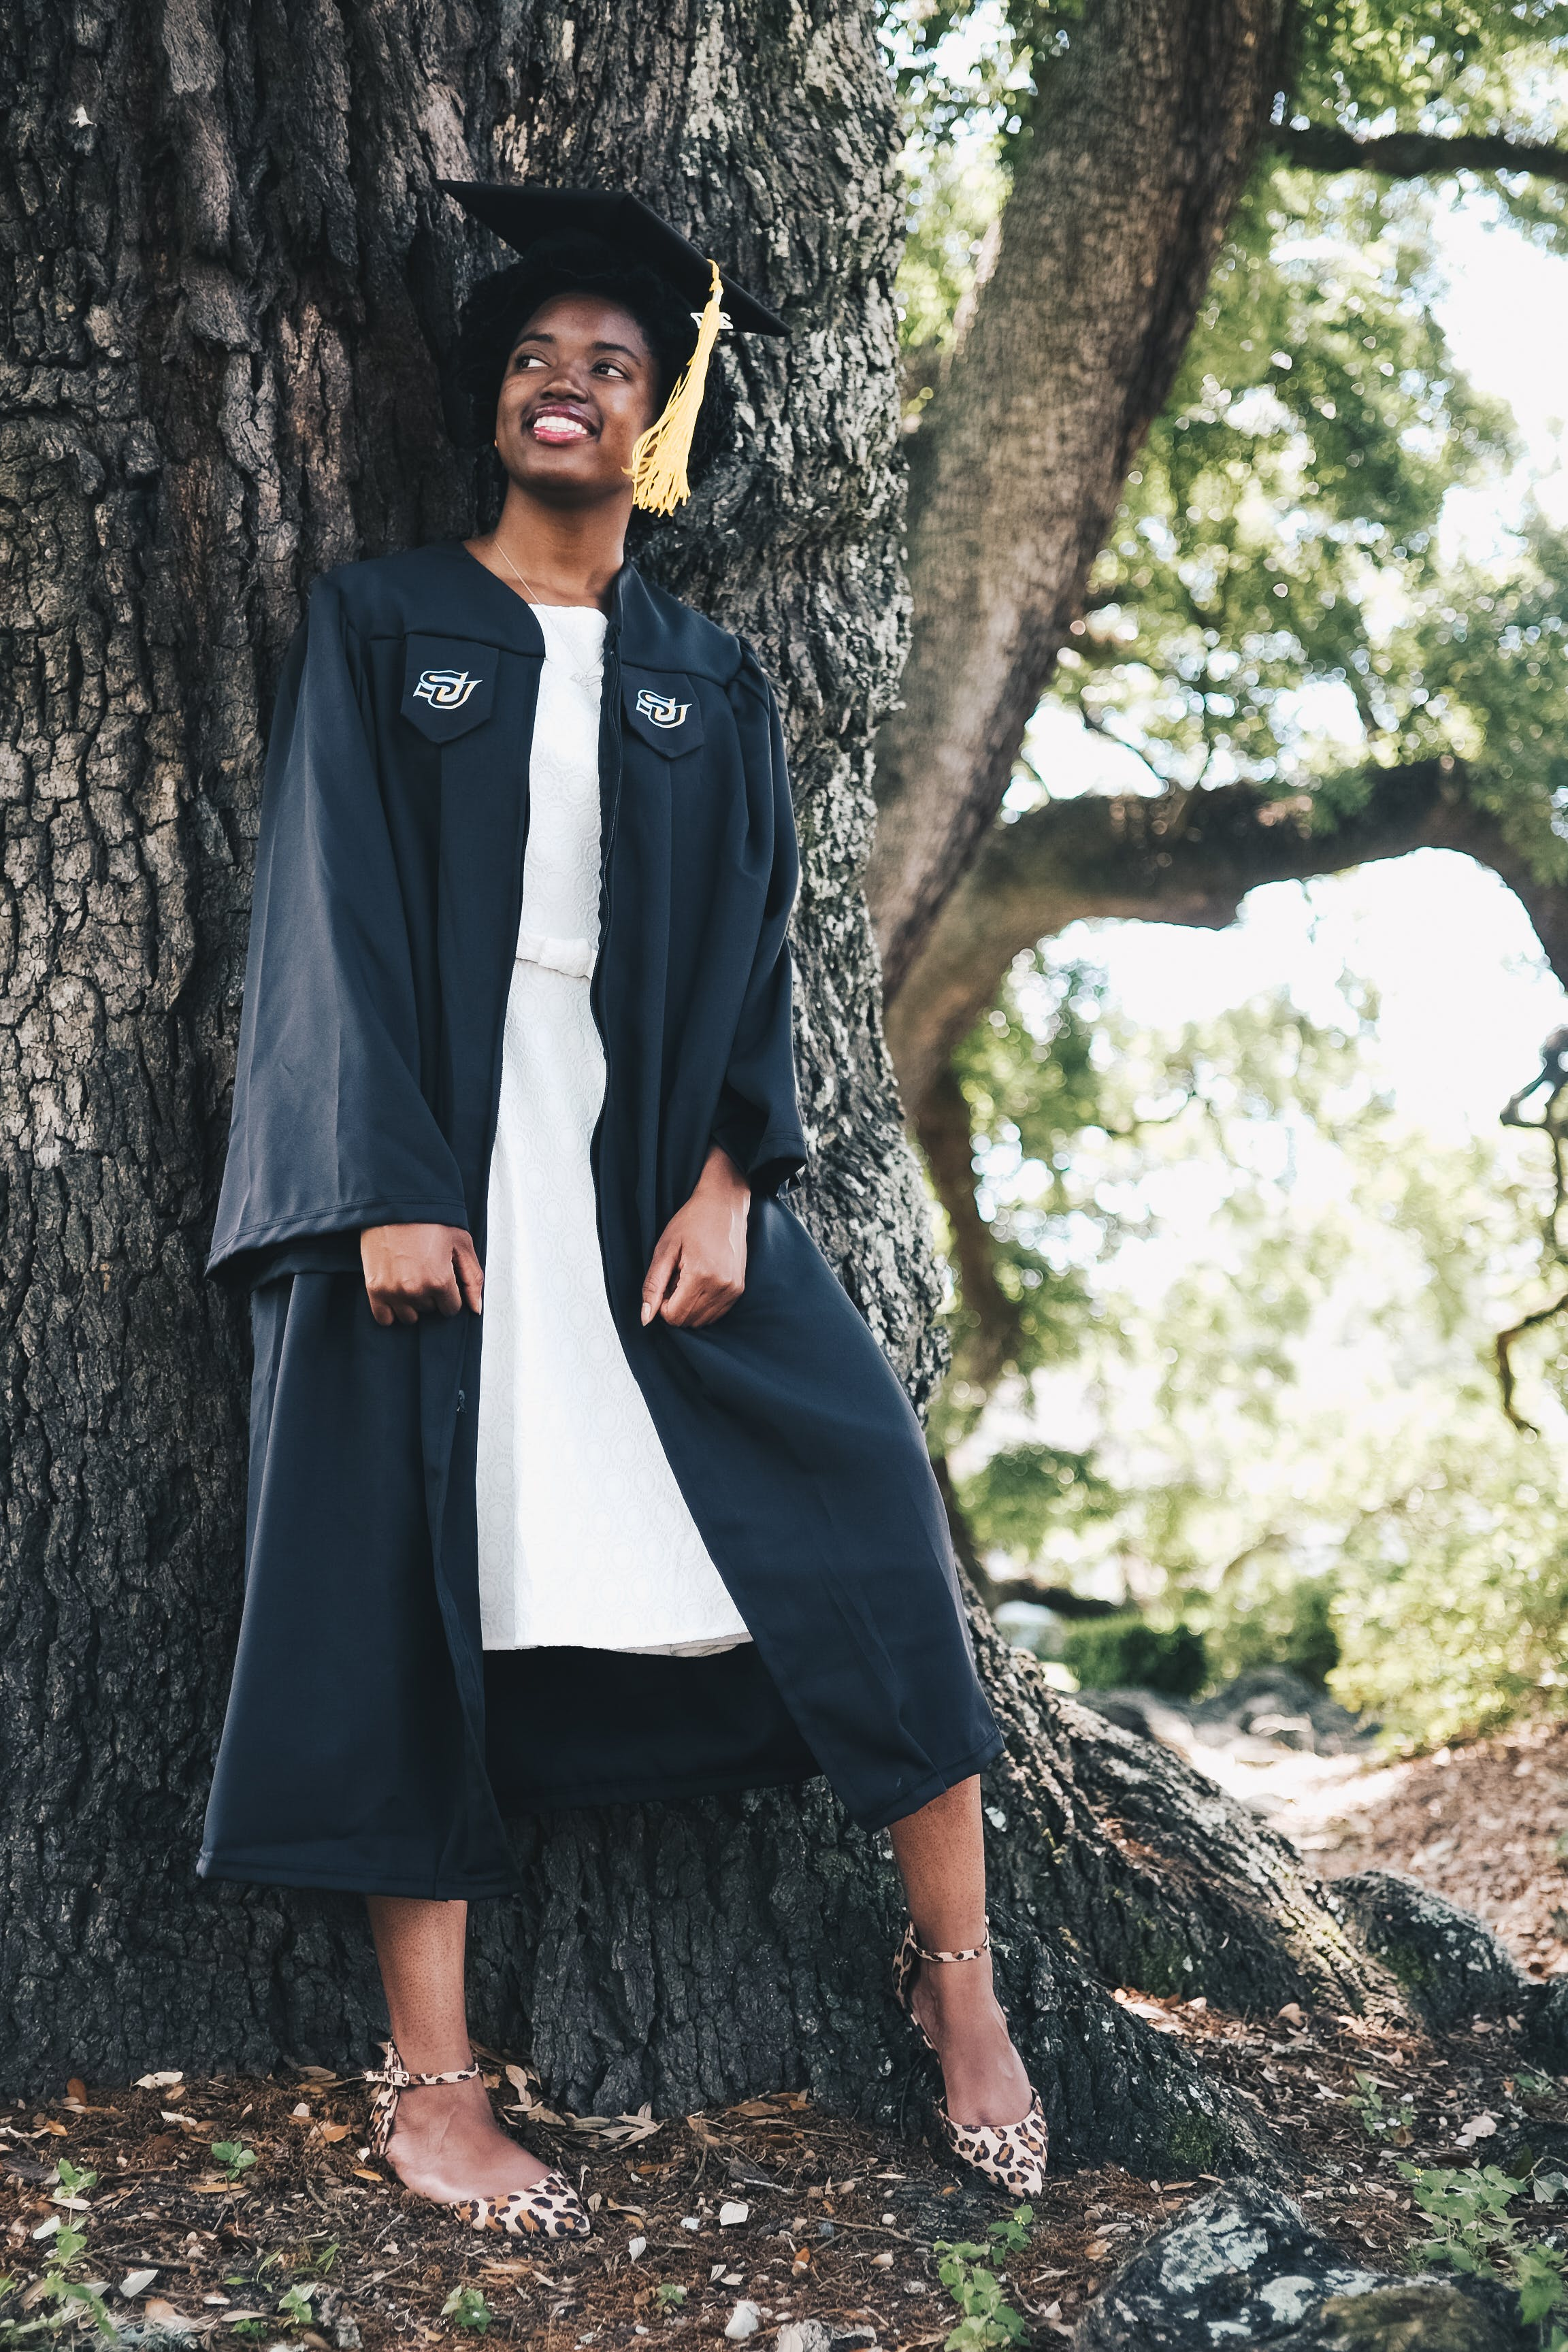 Smiling Woman Wearing Black Academic Gown and Hat Leaning Behind Tree